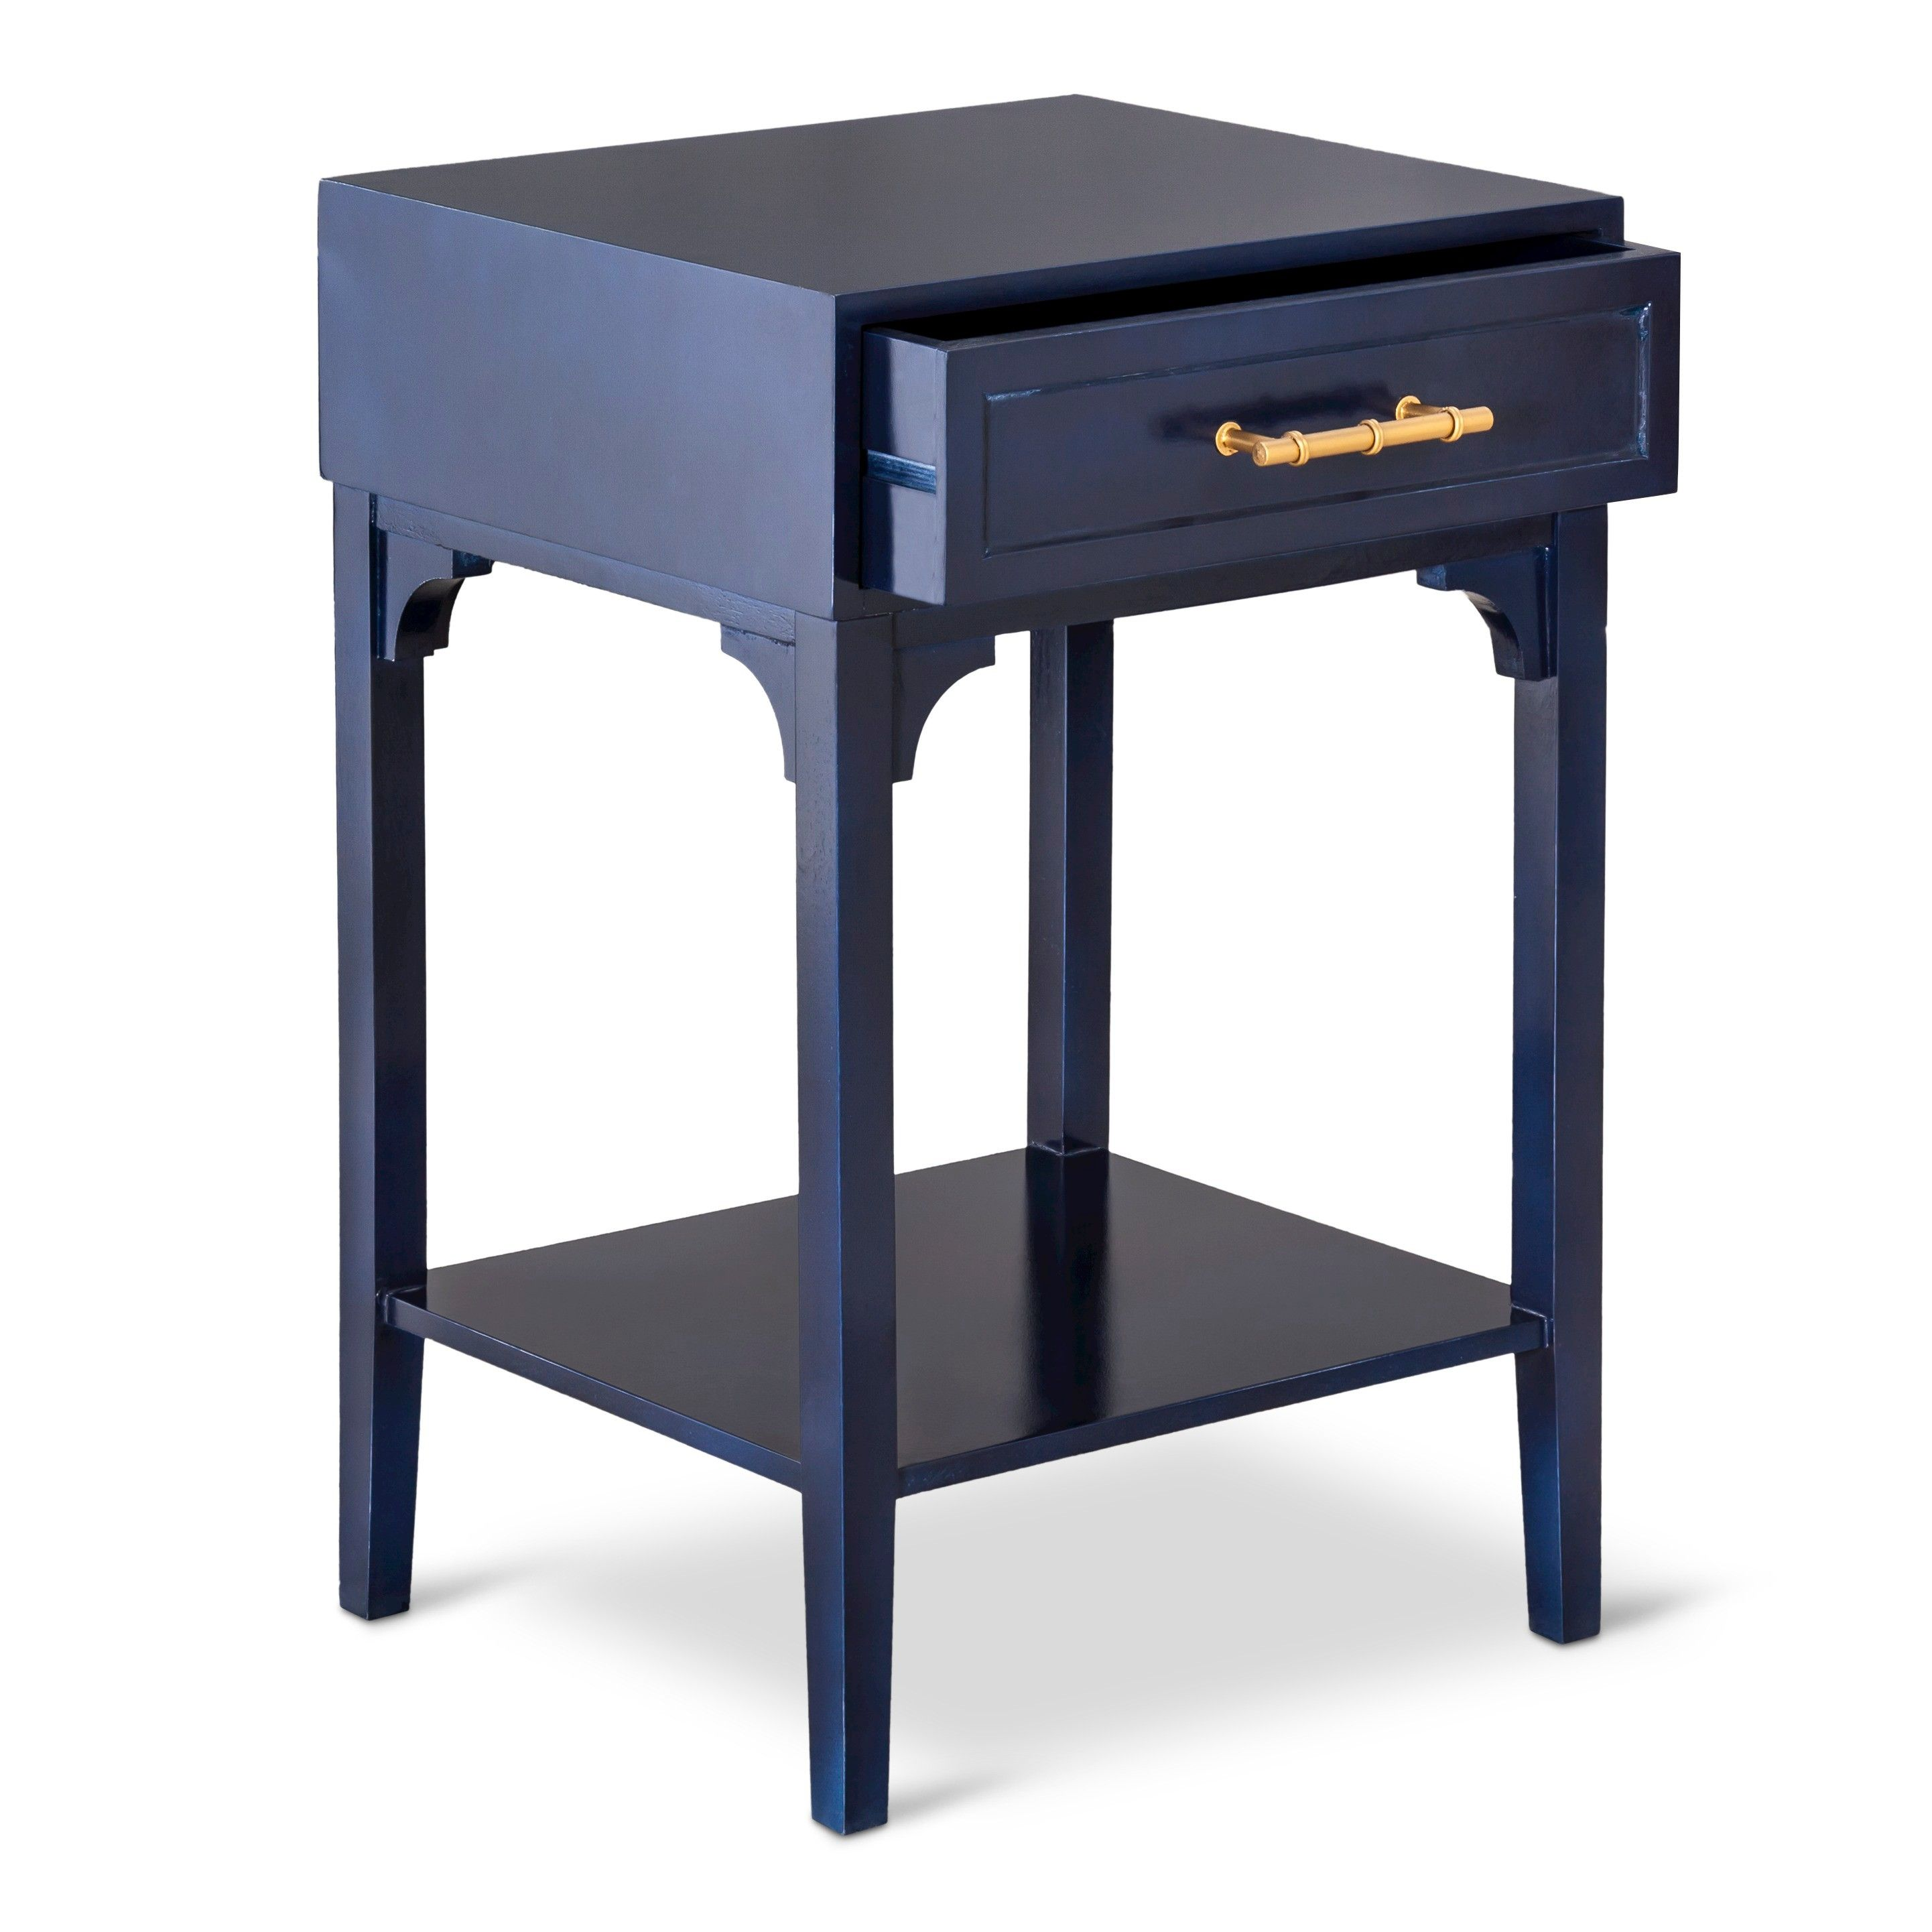 threshold accent table with bamboo motif handle target loft drawer modern black lamp rustic coffee and end tables simple plans polished concrete top kitchen shades rectangular